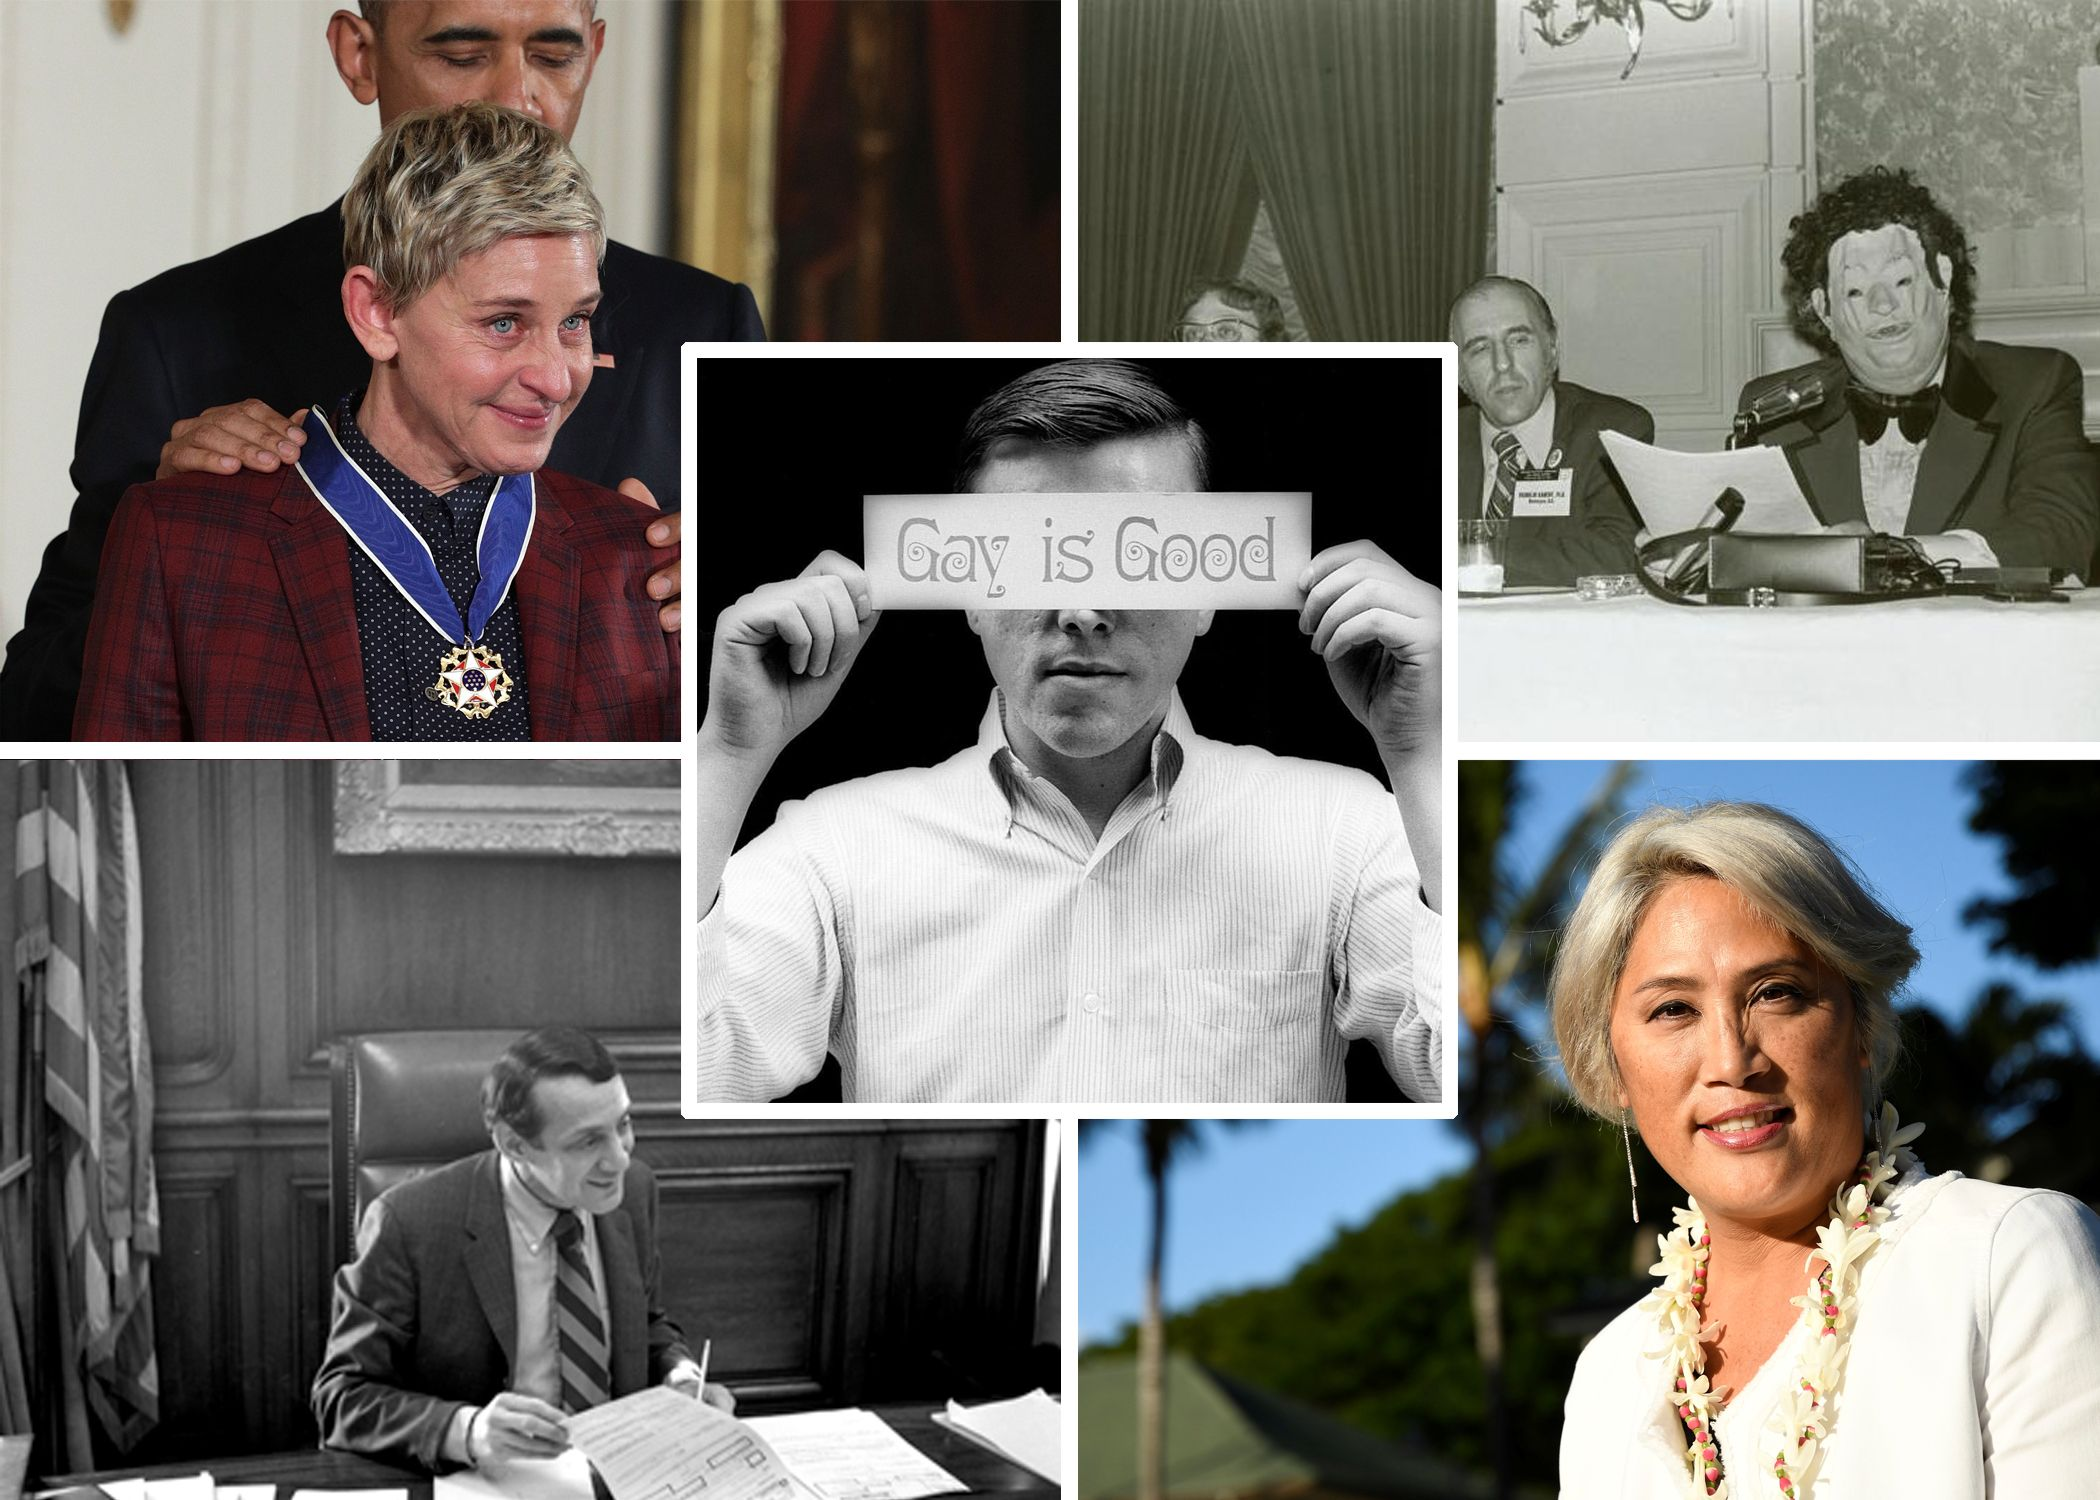 LGBT Pride: 50 Gay Rights Movement Pioneers You Need to Know